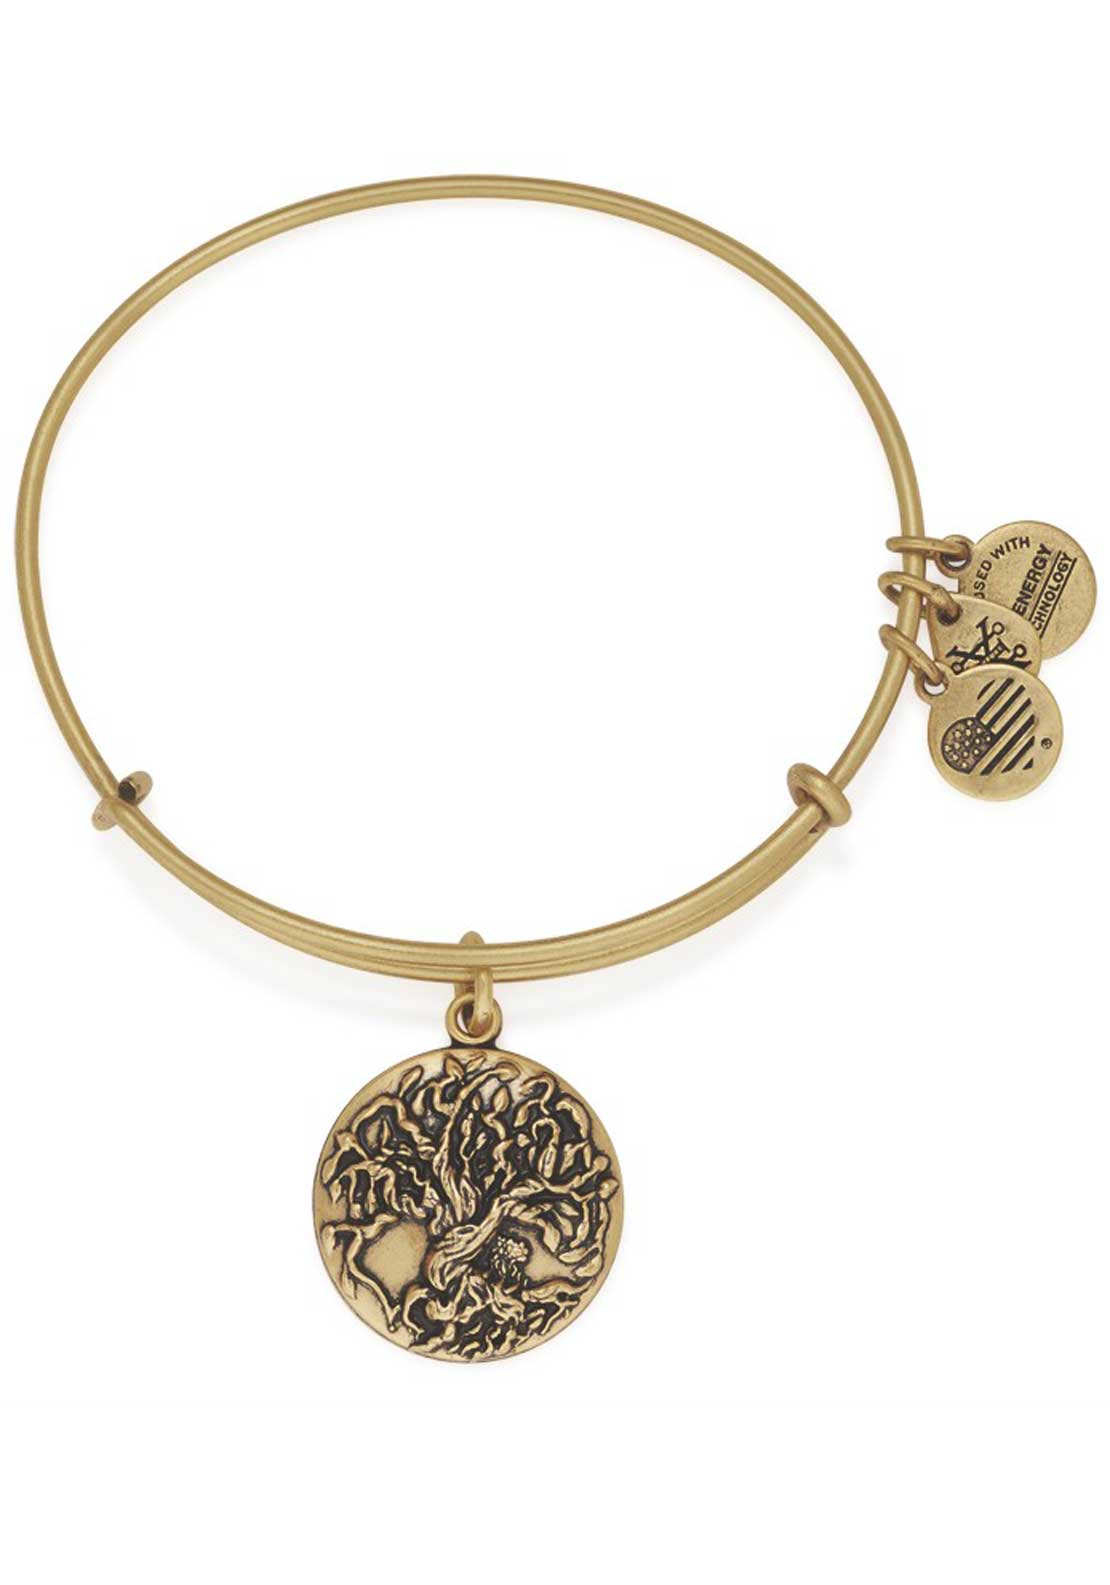 Alex and Ani Tree of Life Bracelet, Gold